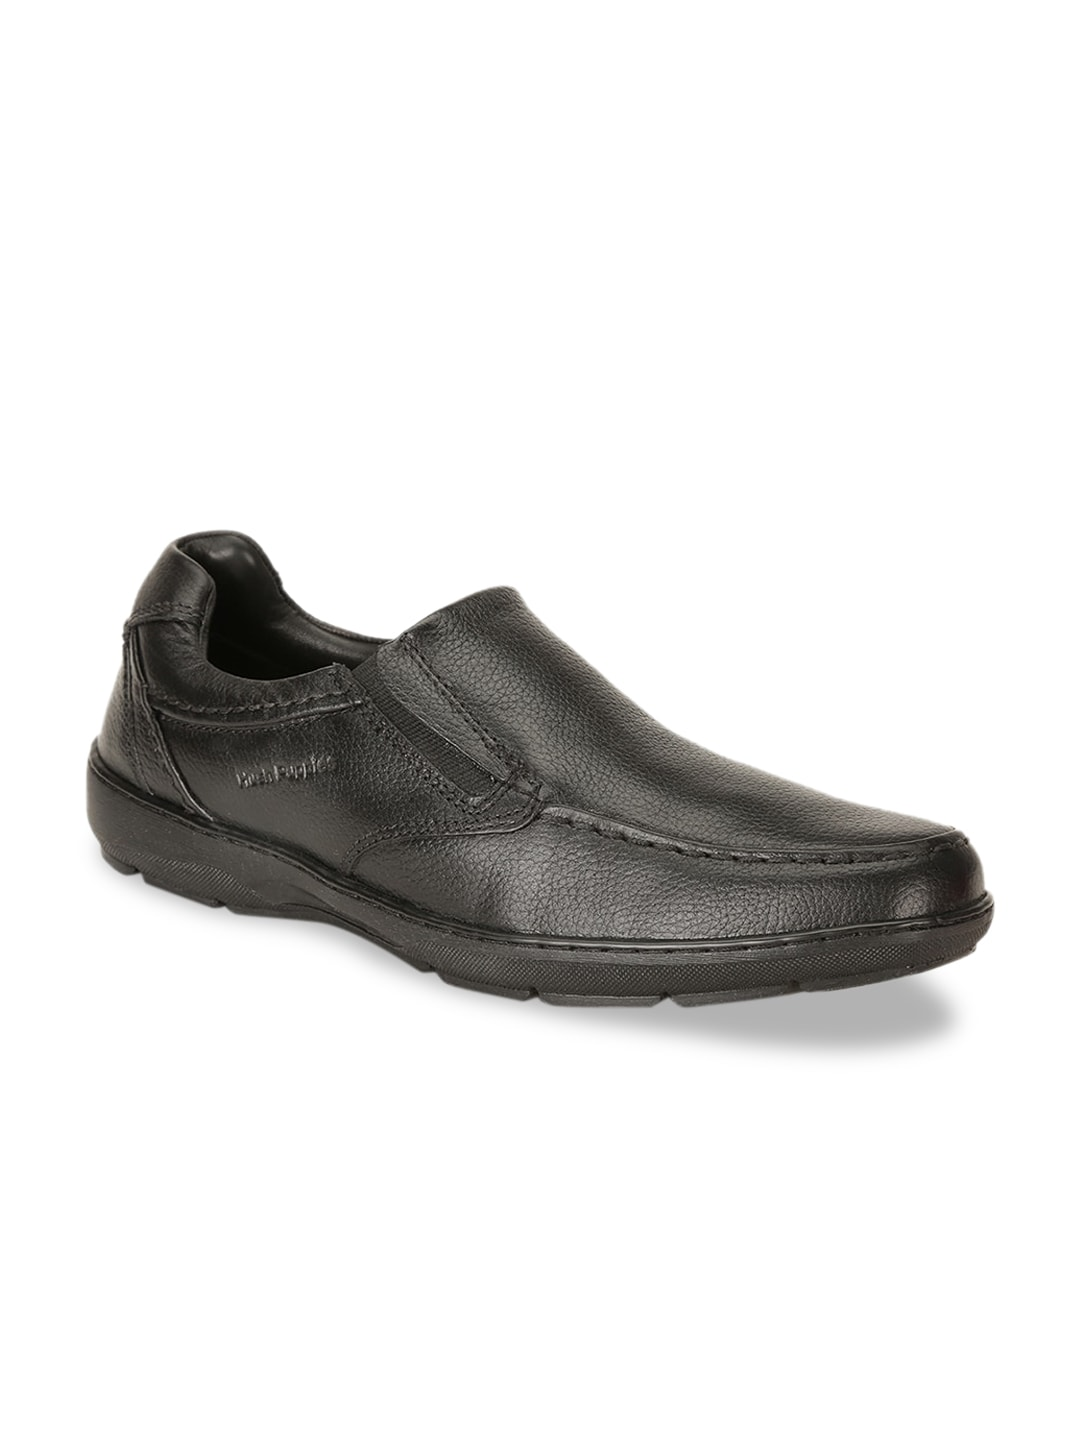 Hush Puppies Men Black Solid Leather Formal Shoes